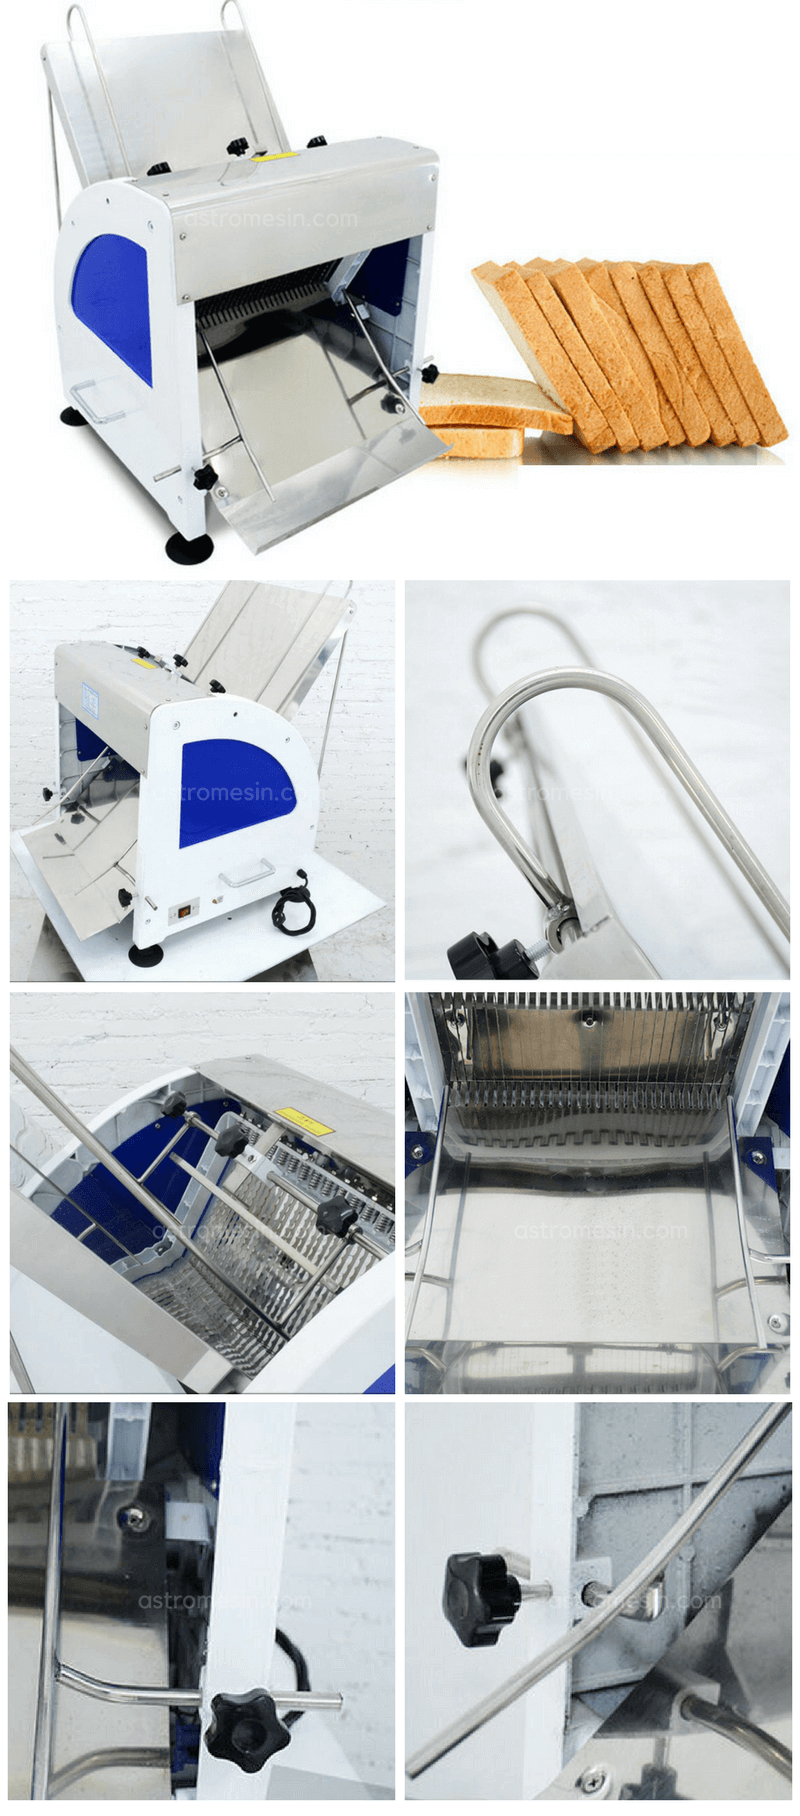 FITUR MESIN PEMOTONG ROTI BREAD SLICER ASTRO BY GETRA